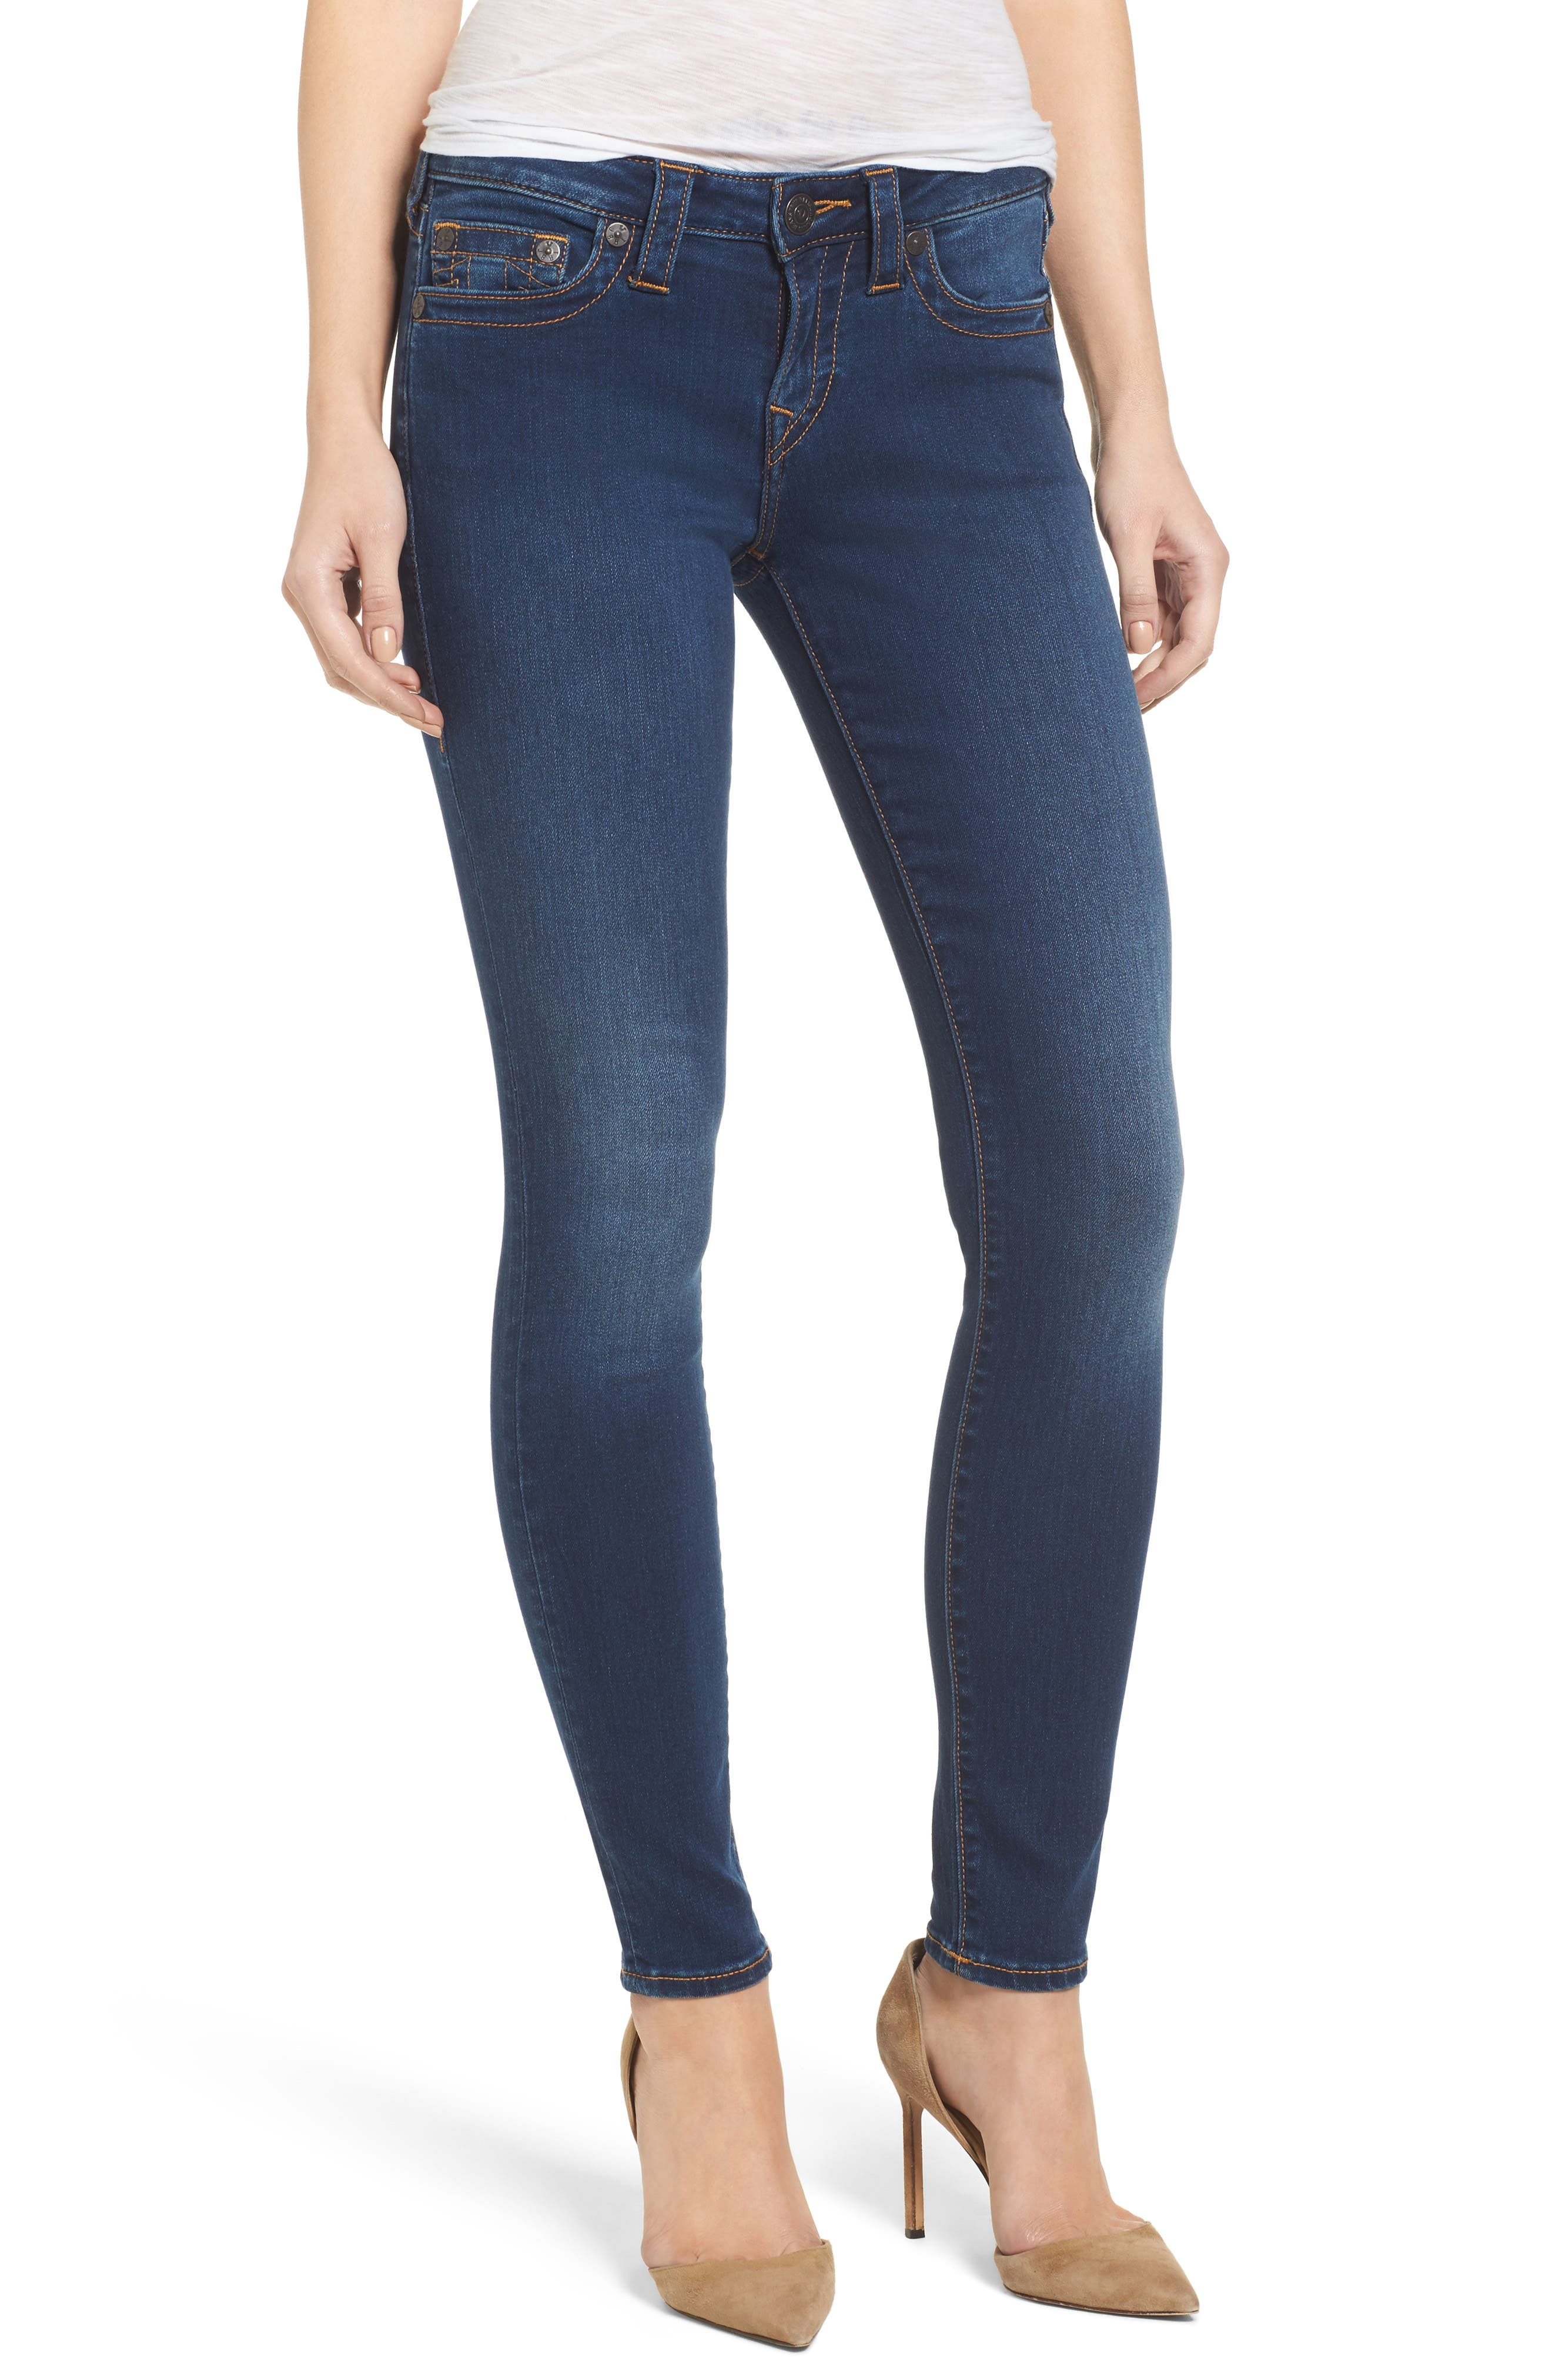 Halle Mid Rise Skinny Jeans,                             Main thumbnail 1, color,                             400